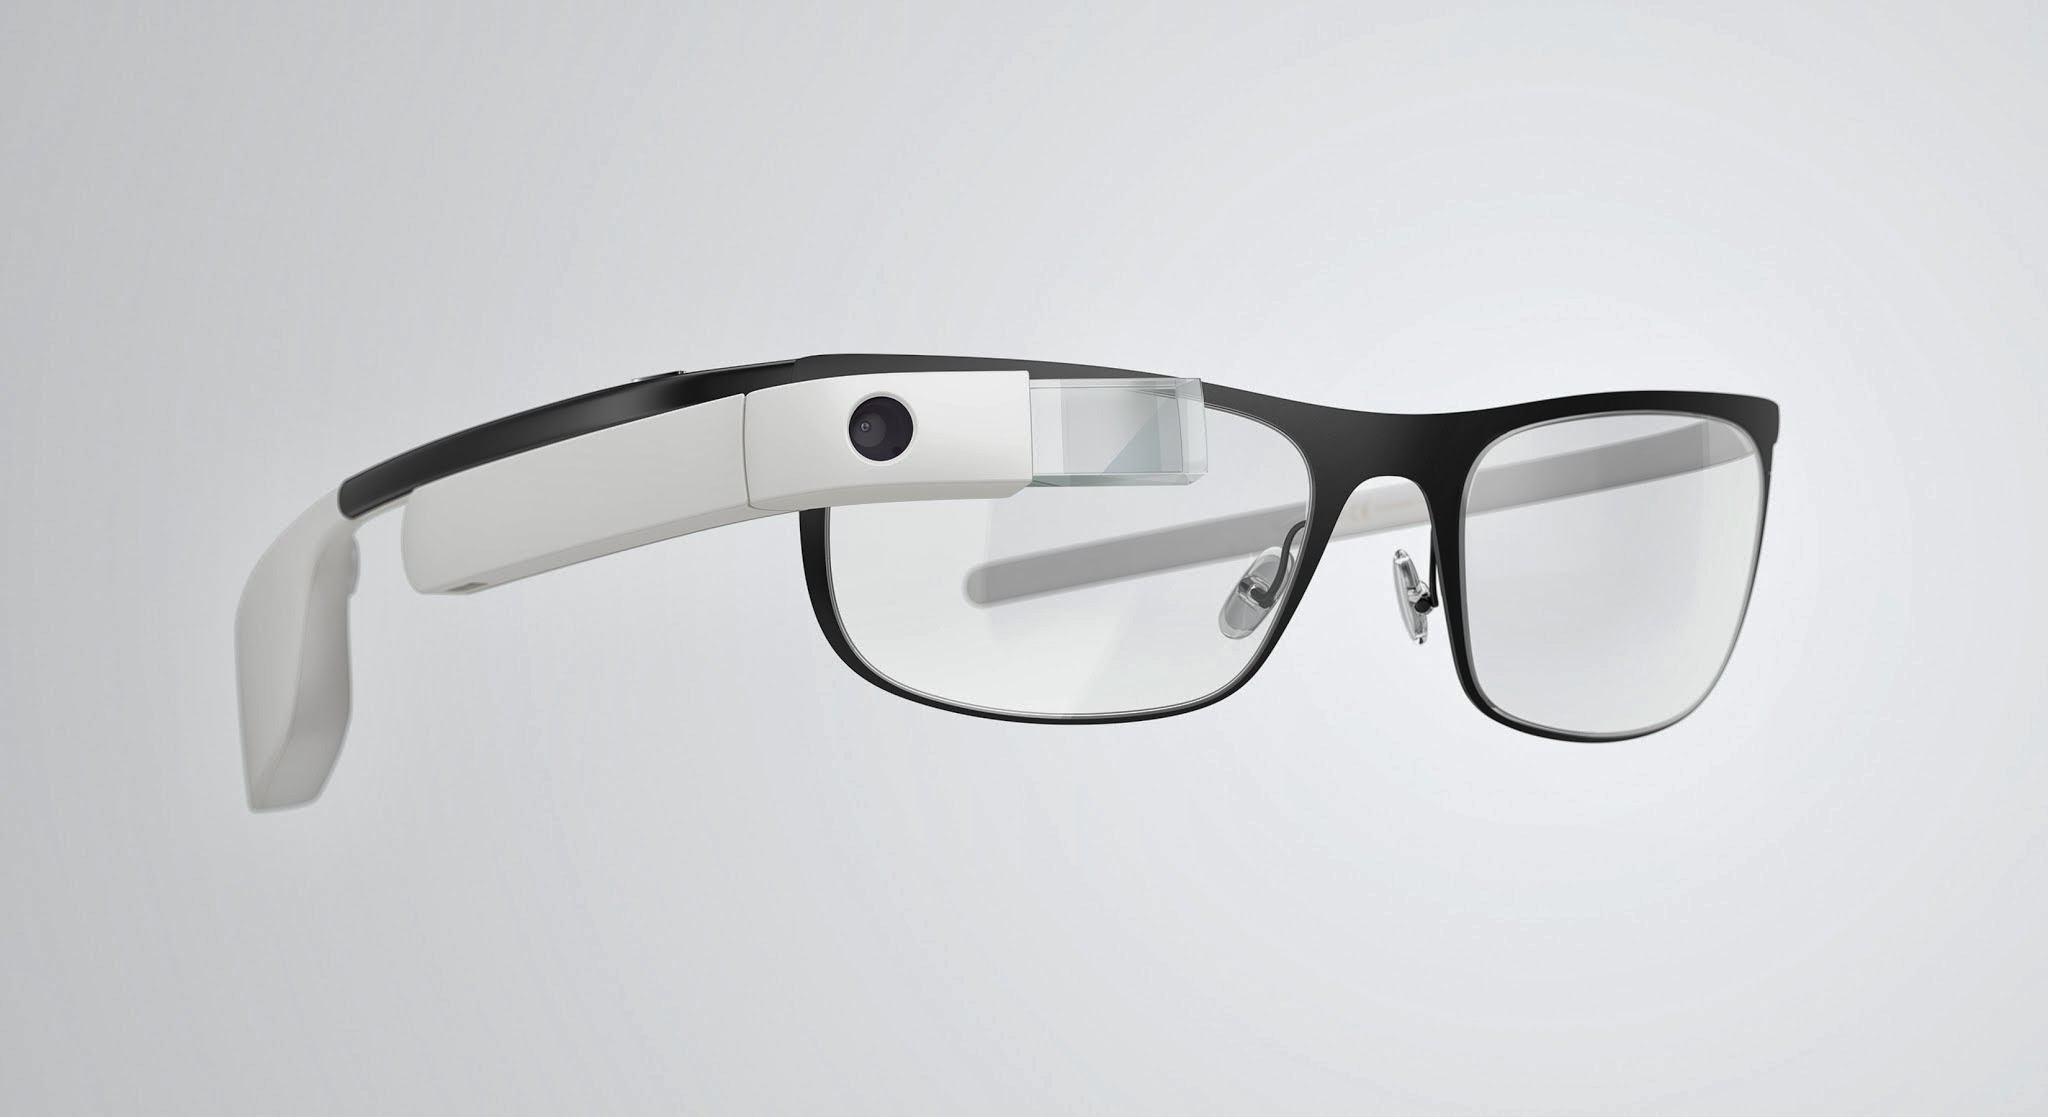 Google Glass Can now be Used with Prescription Glasses